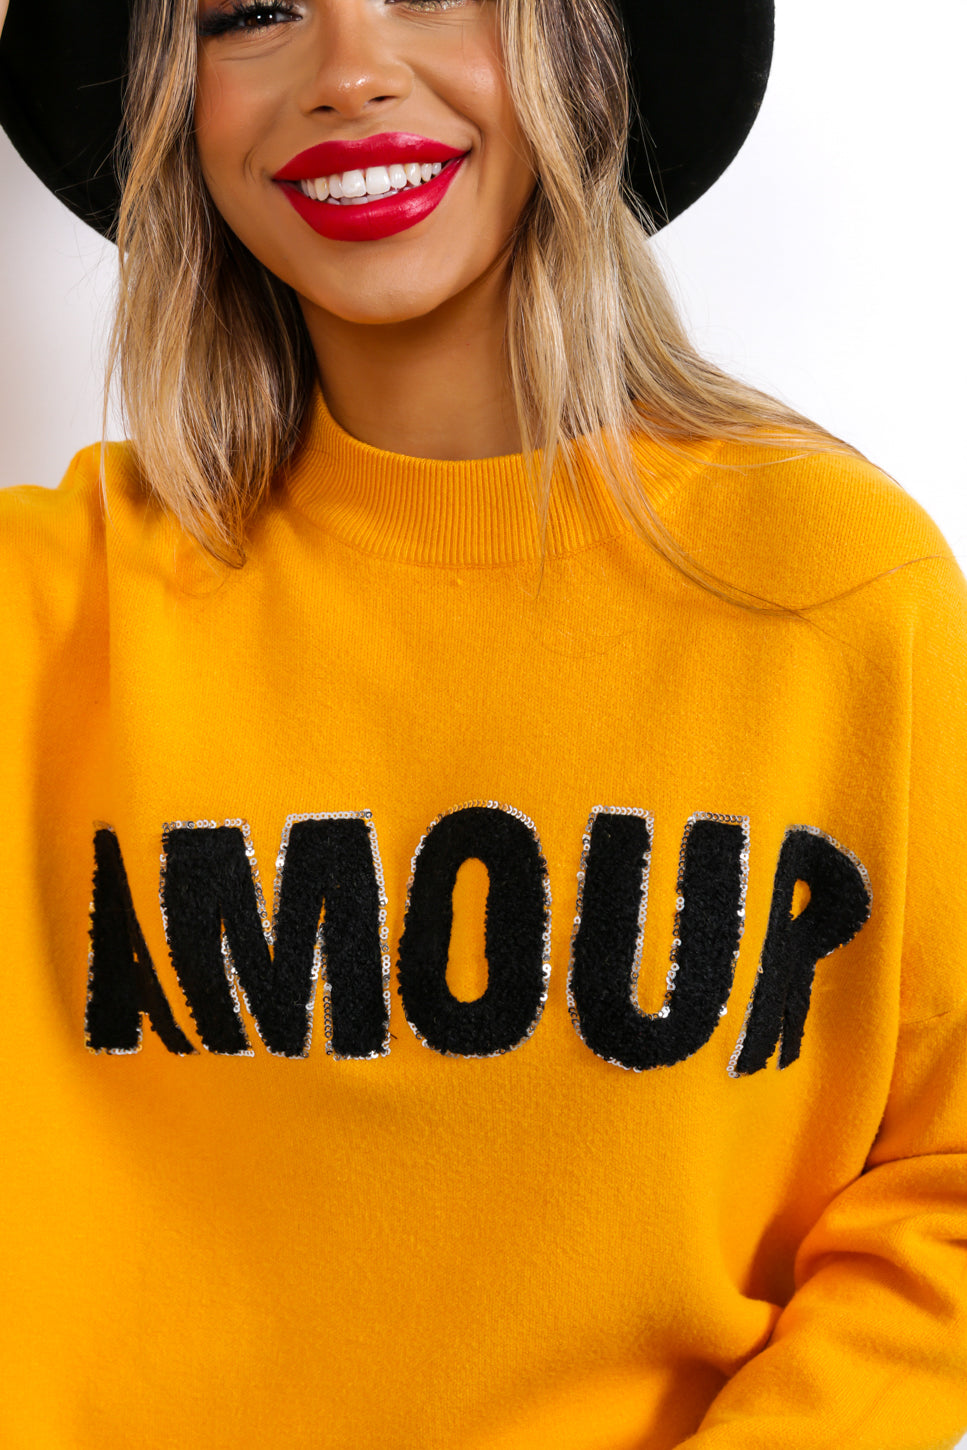 https://cdn.shopify.com/s/files/1/0062/6661/7925/files/product-video-je_taime_-jumper-in-yellow.mp4?5932